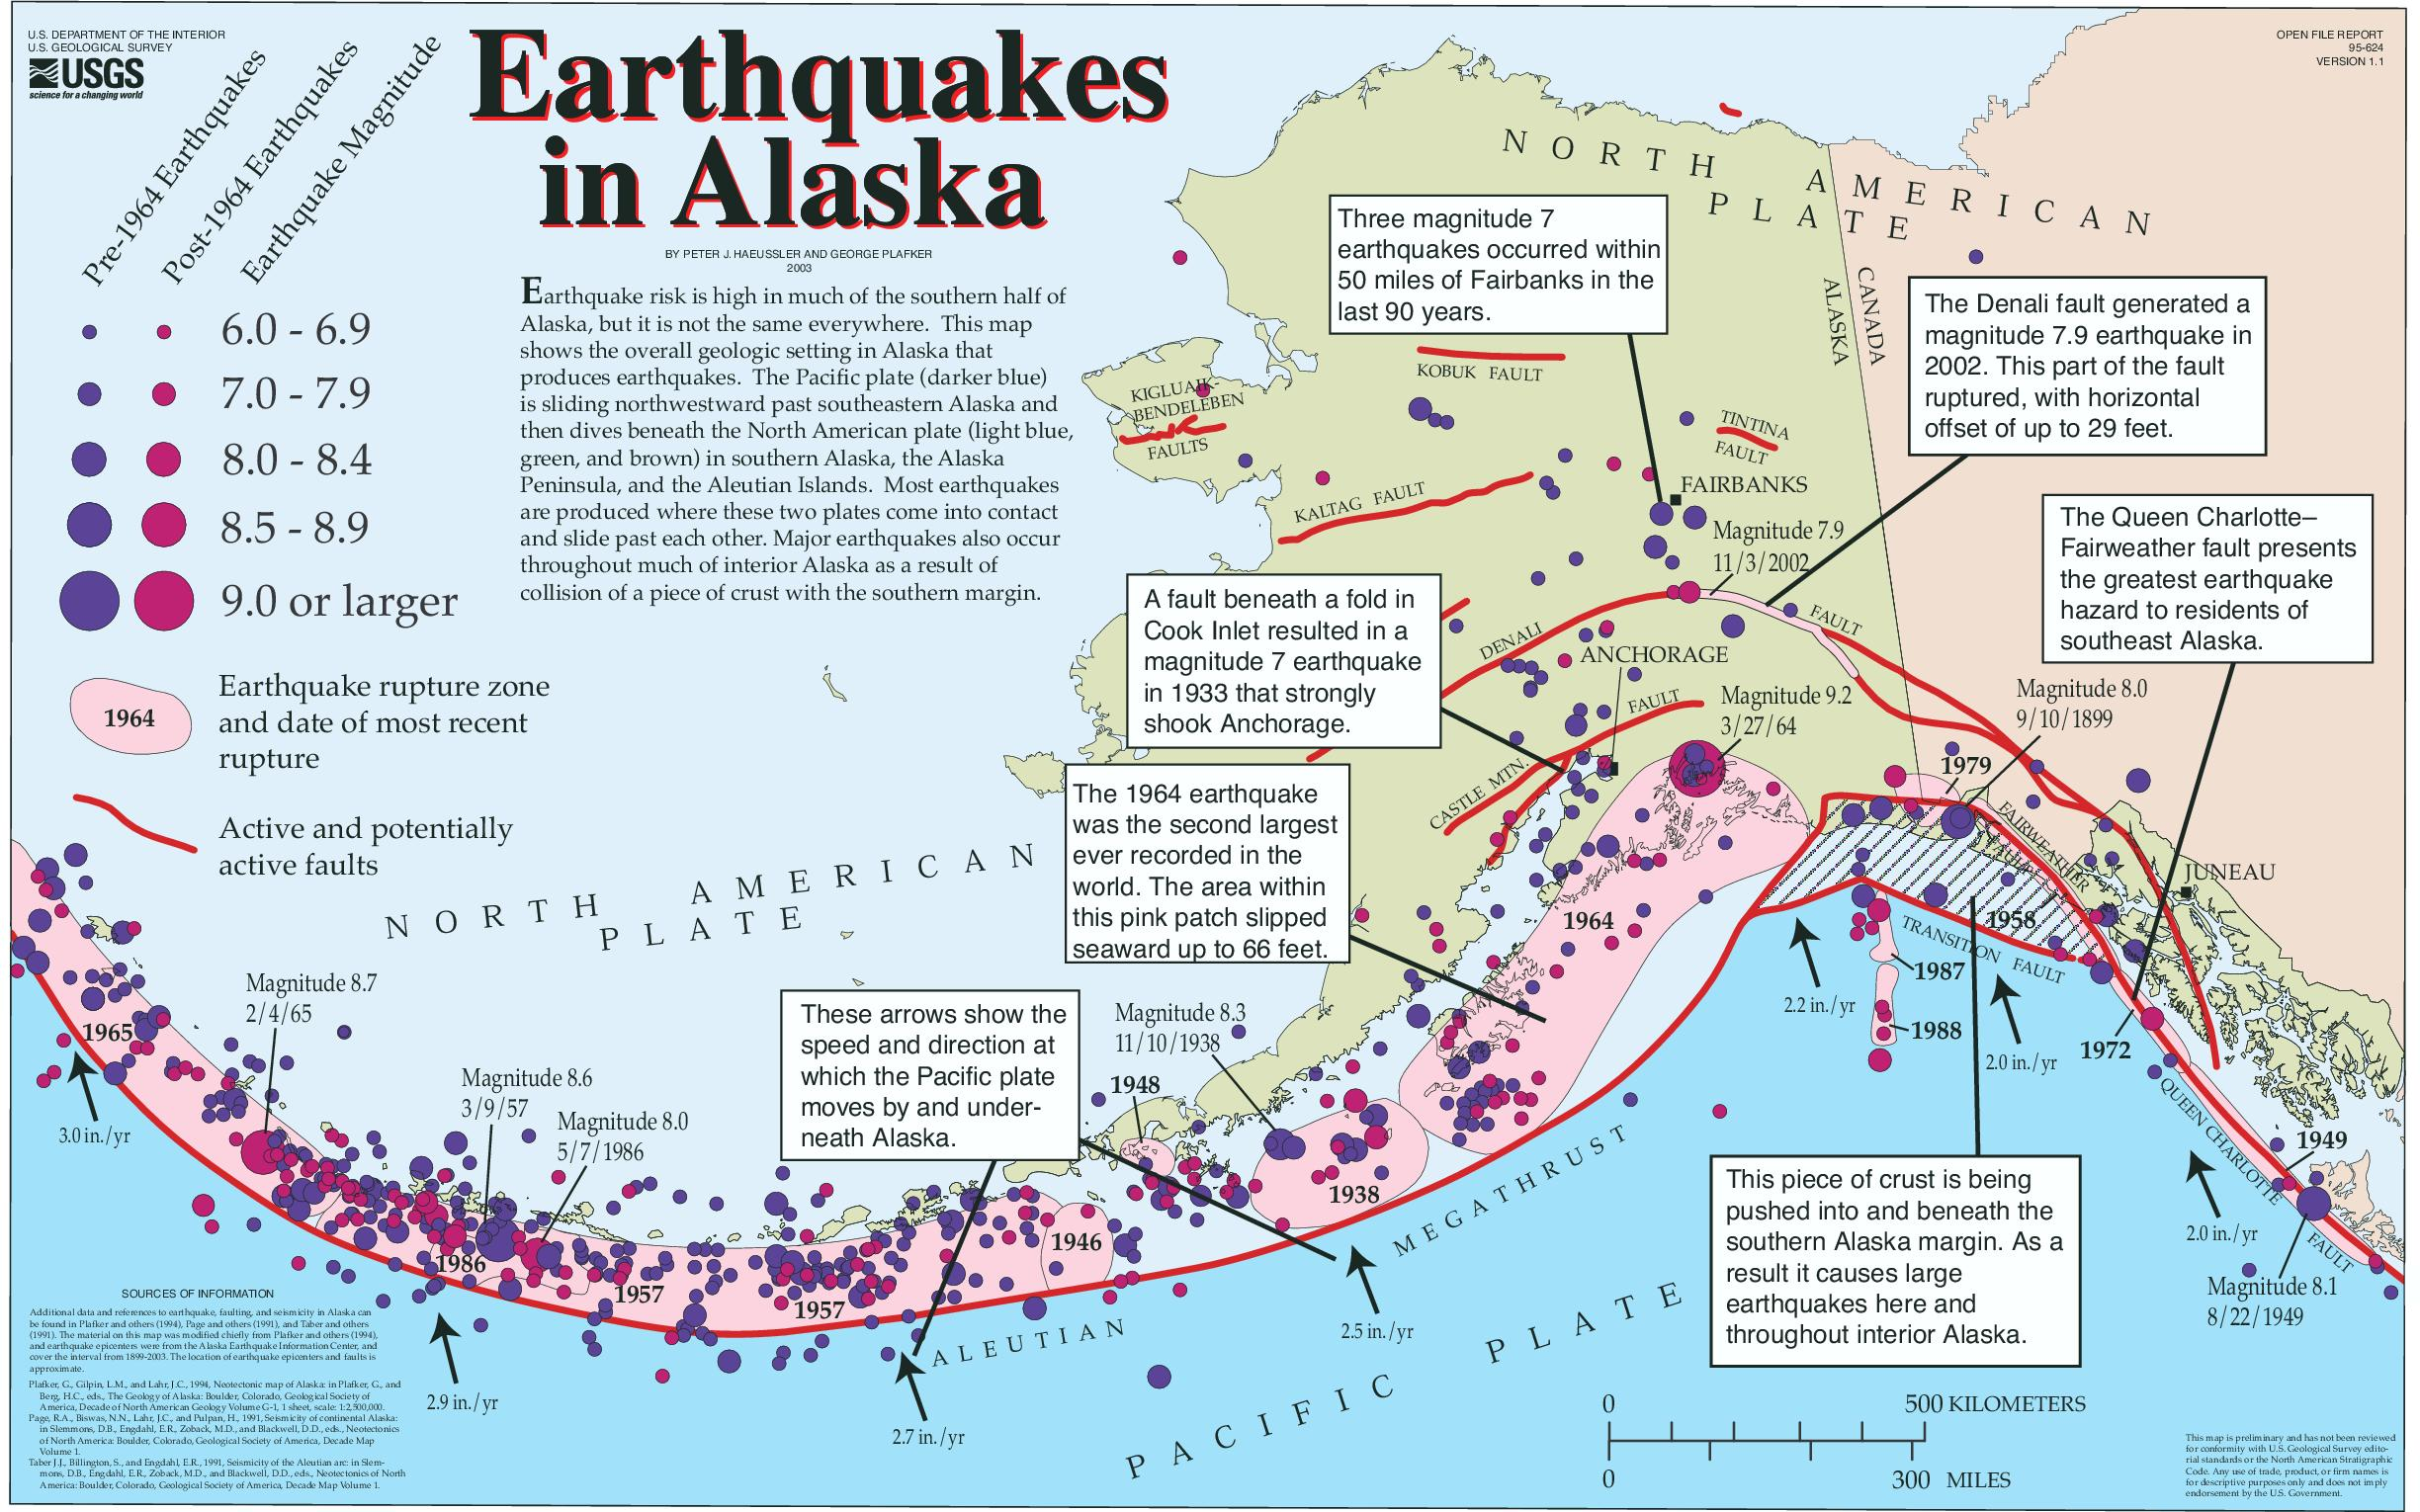 map of historic earthquakes active faults and rupture zones earthquakes in alaska